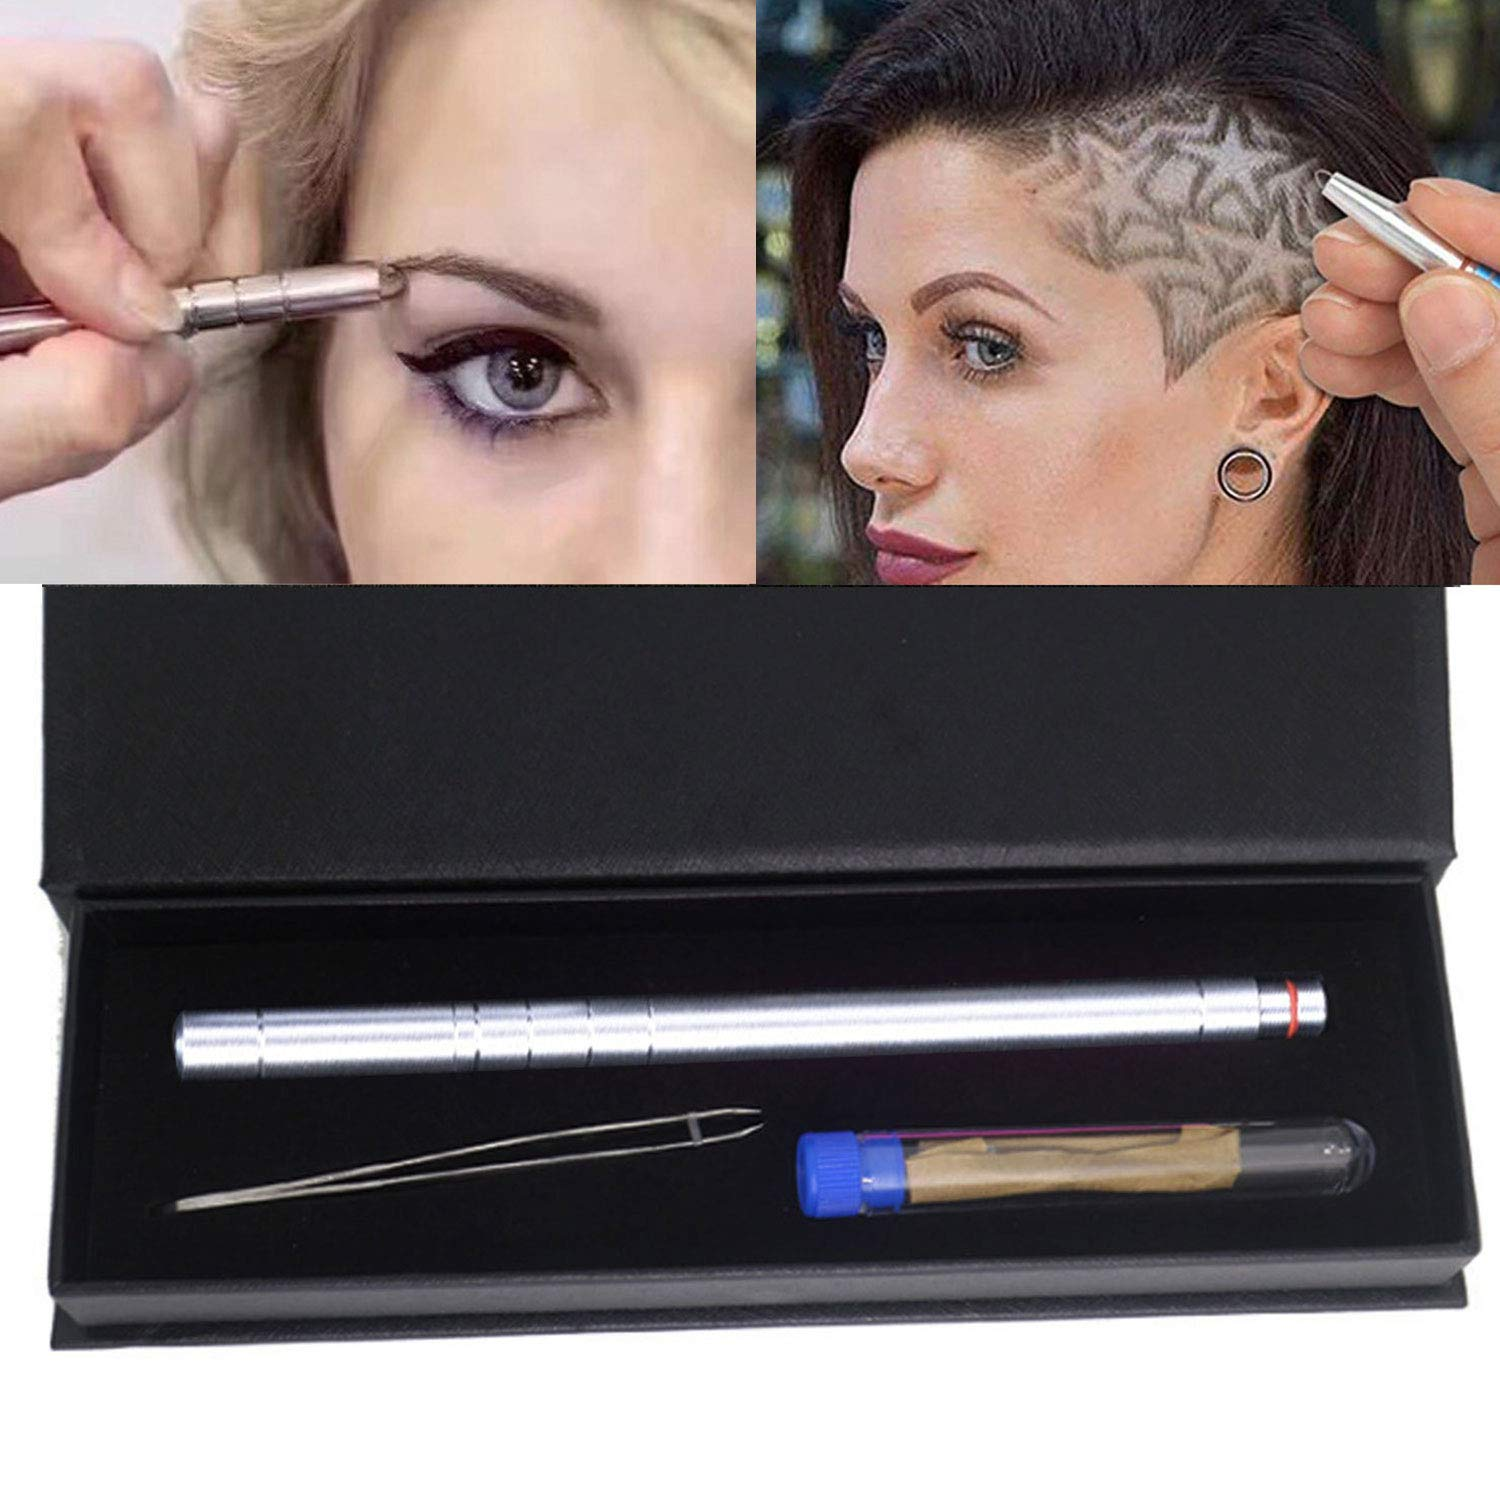 Amazon Hair Tattoo Trim Styling Face Eyebrow Shaping Device